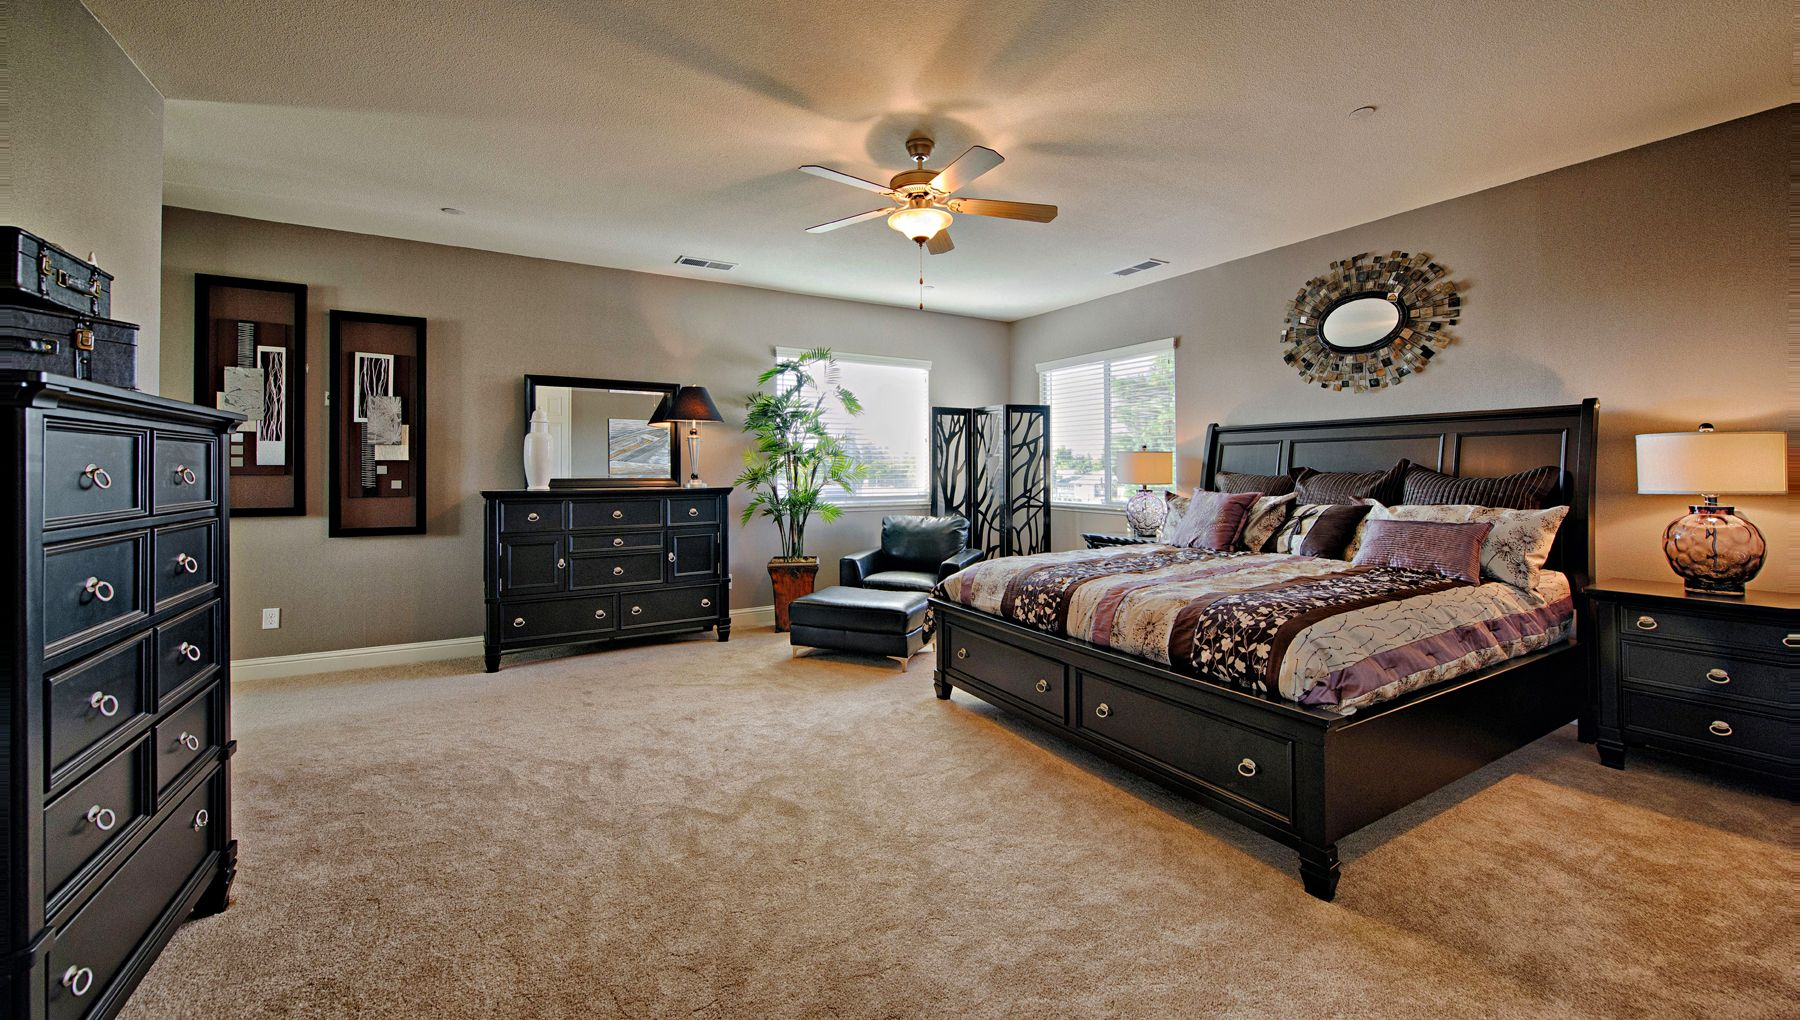 Dream master bedrooms dream master bedroom cool for Inside 4 bedroom house